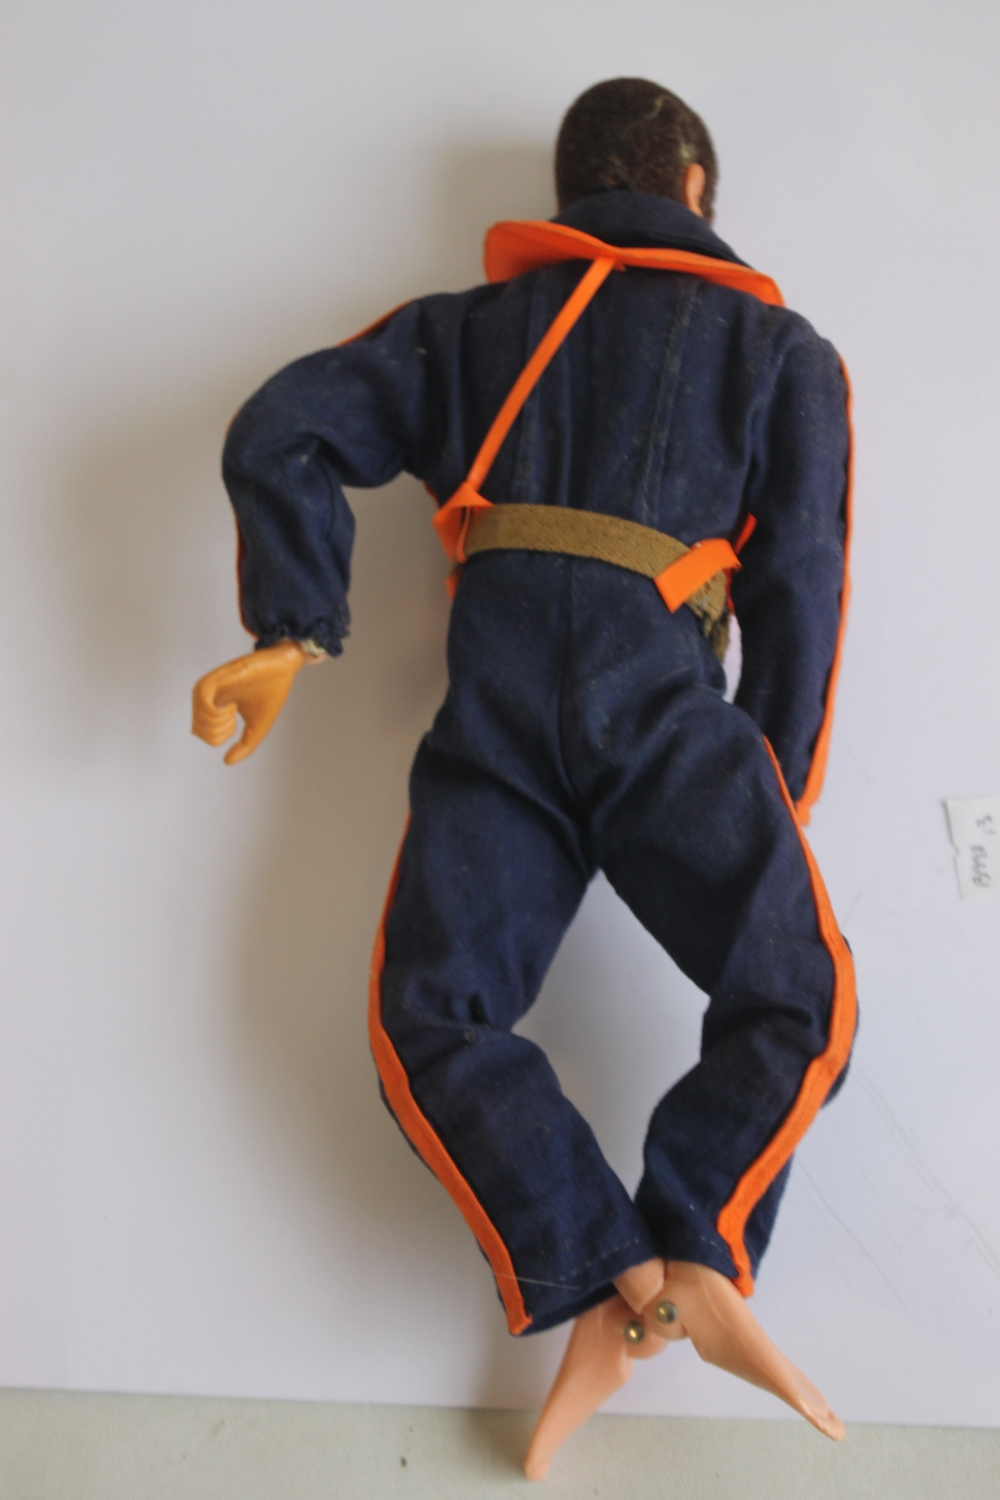 A VINTAGE ACTION MAN EAGLE EYES FIGURE WITH DARK FLOCK HAIR AND BEARD, in flying suit and USAF - Image 3 of 3